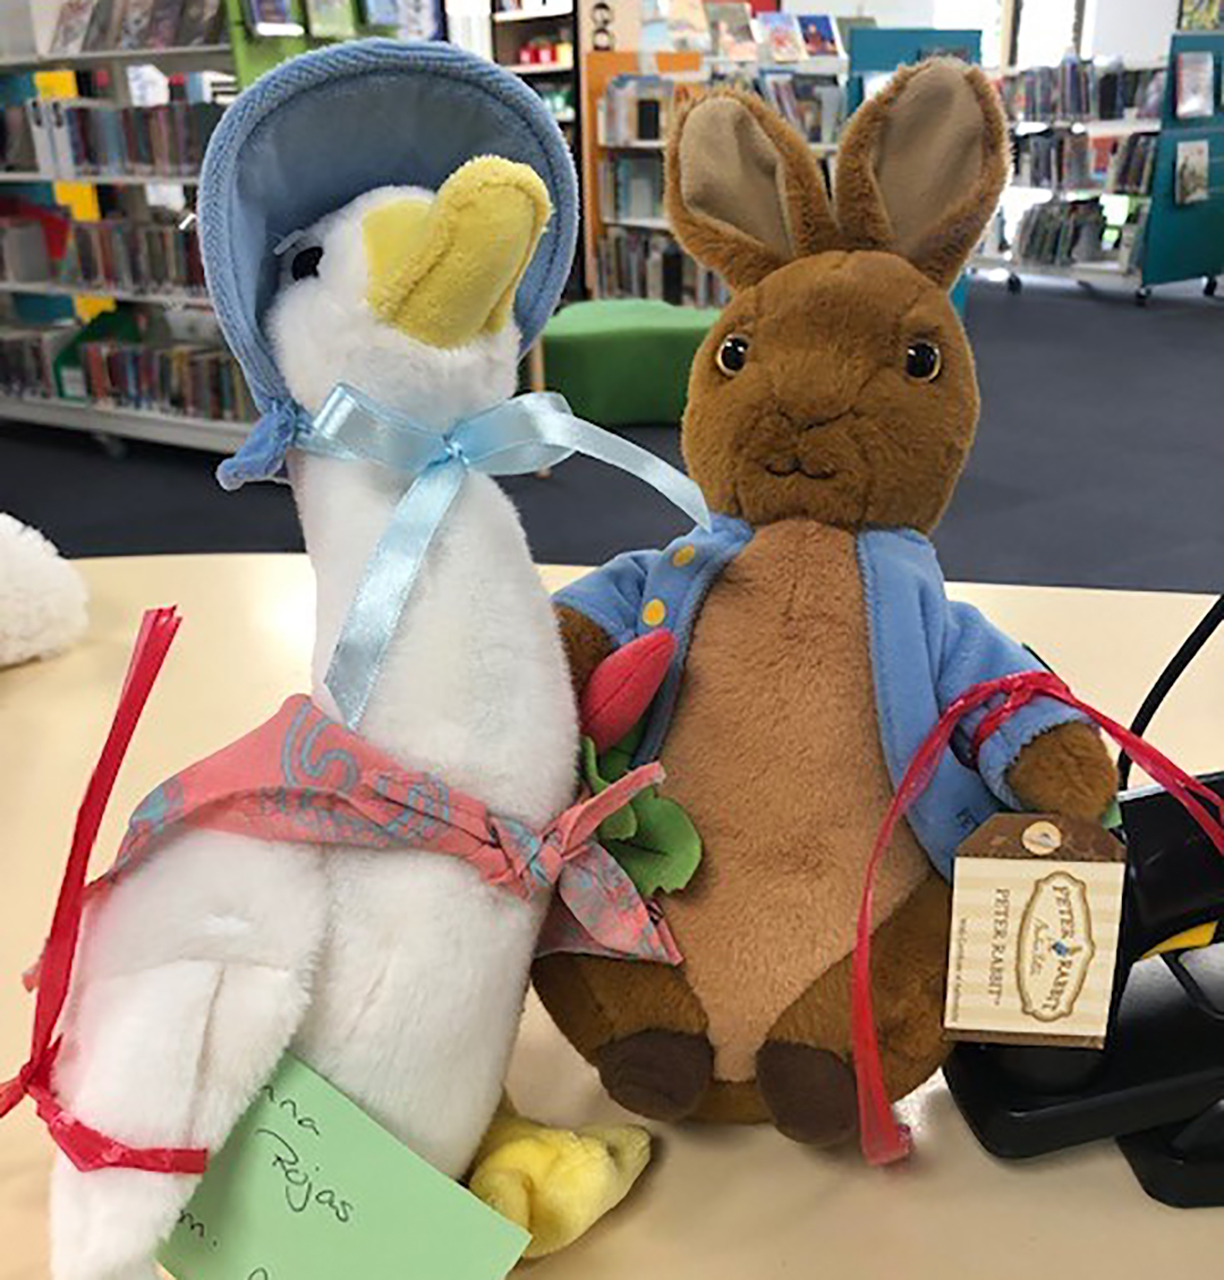 Peter Rabbit and Jemima Puddle-Duck - Sienna Rojas